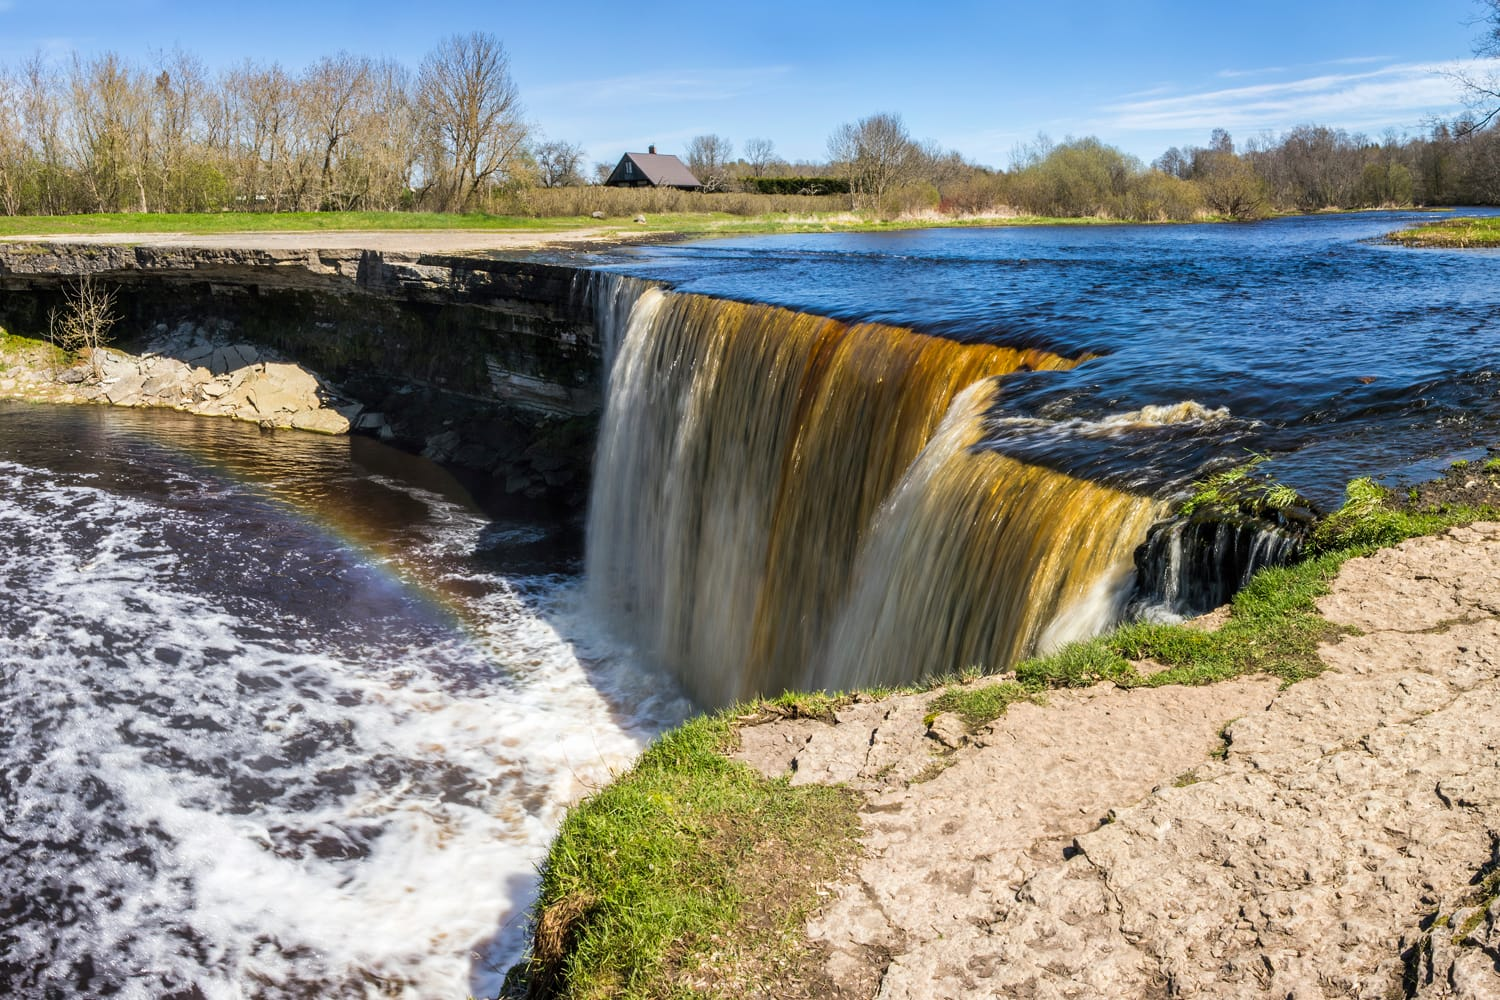 Panoramic view of the famous Jagala( Jägala) waterfall with rainbow in mist, Estonia